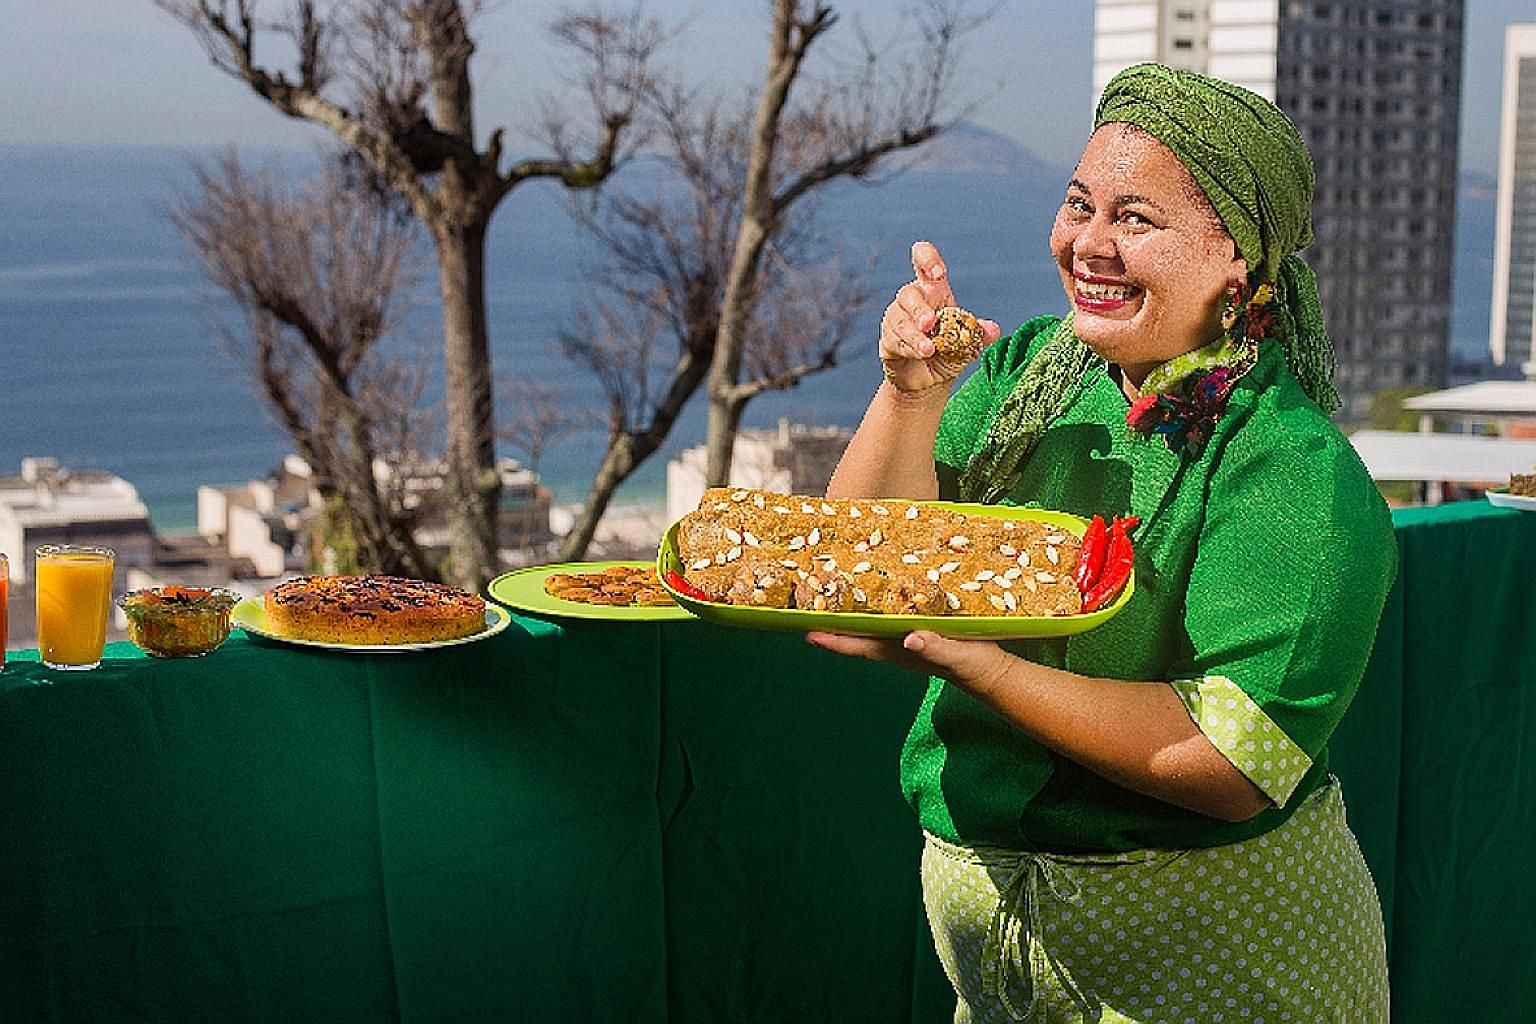 Ms Regina Tchelly with her pumpkin peel buns and other culinary delights made from leftovers. She tries to create food that is beautiful and also has a lot of heartfelt memory.